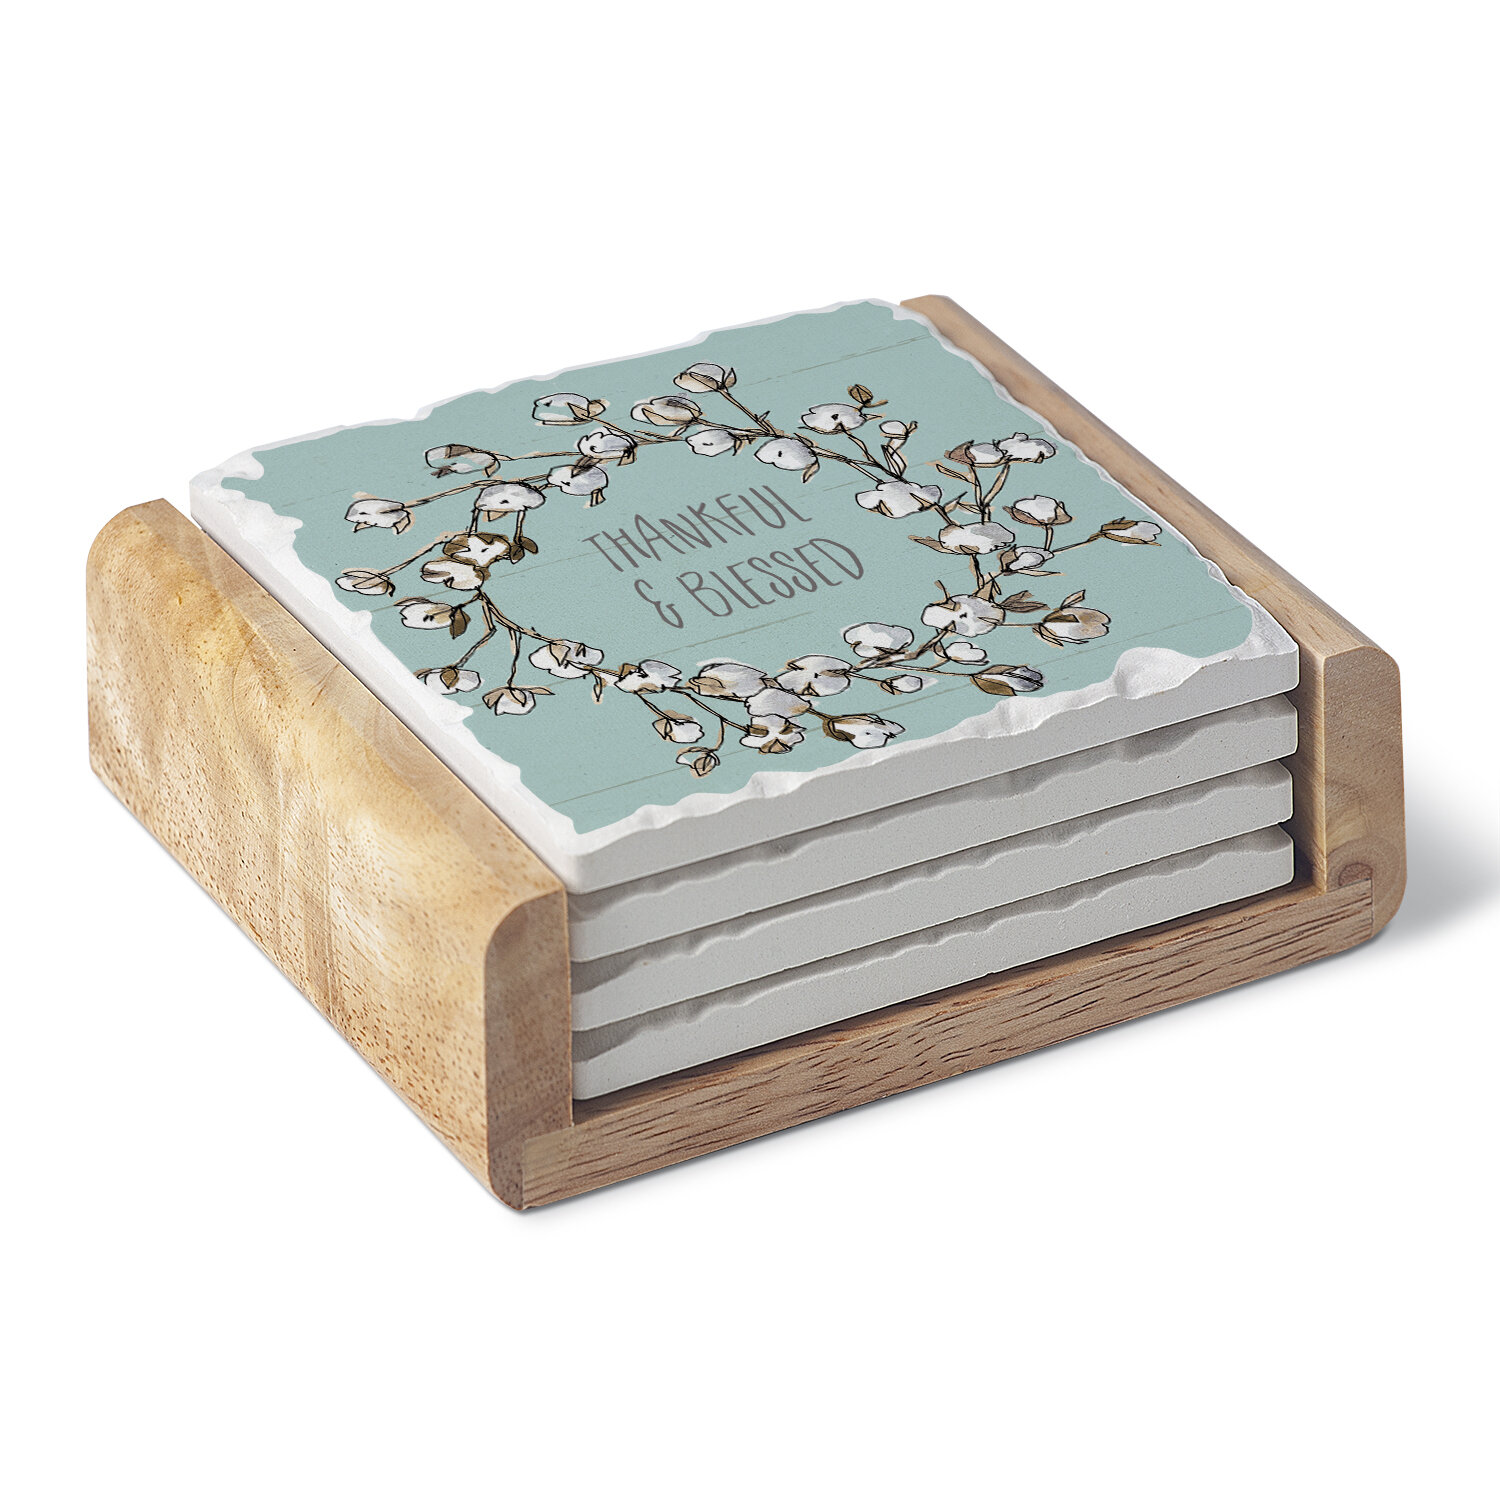 Gracie Oaks Country Life Single Image Absorbent Stone Coaster Set With Holder Wayfair